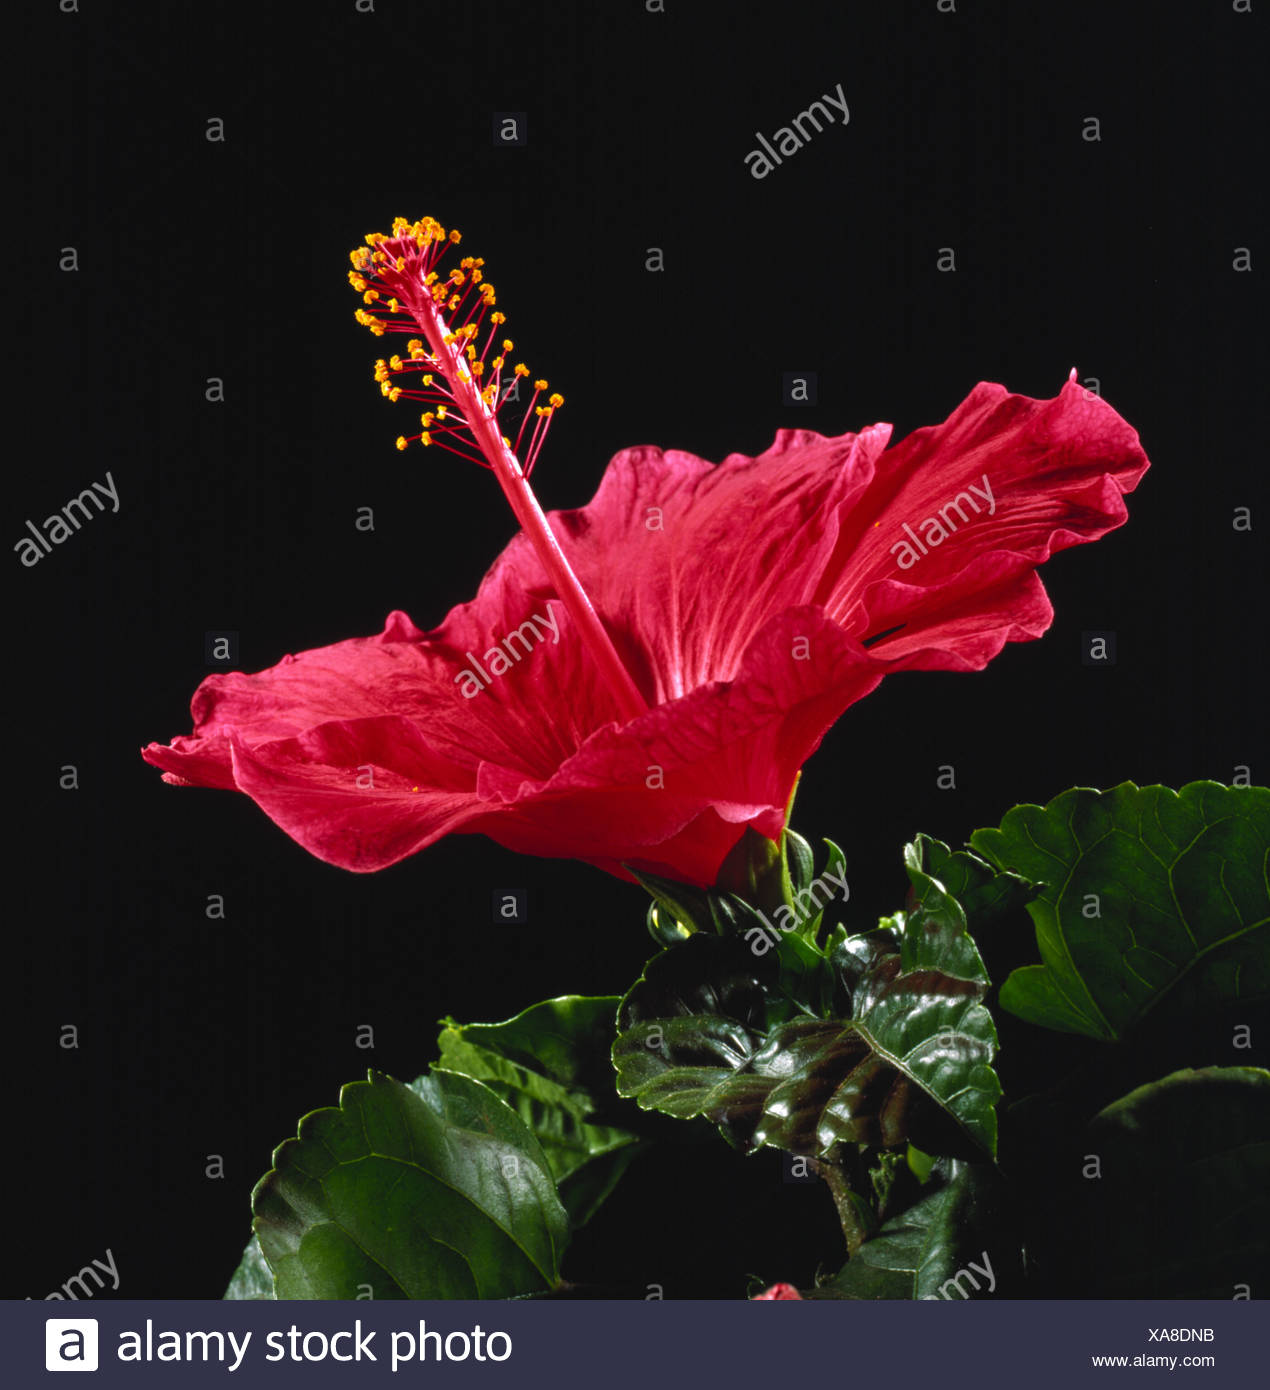 A red hibiscus spp flower showing style stigma and stamens flower a red hibiscus spp flower showing style stigma and stamens flower parts izmirmasajfo